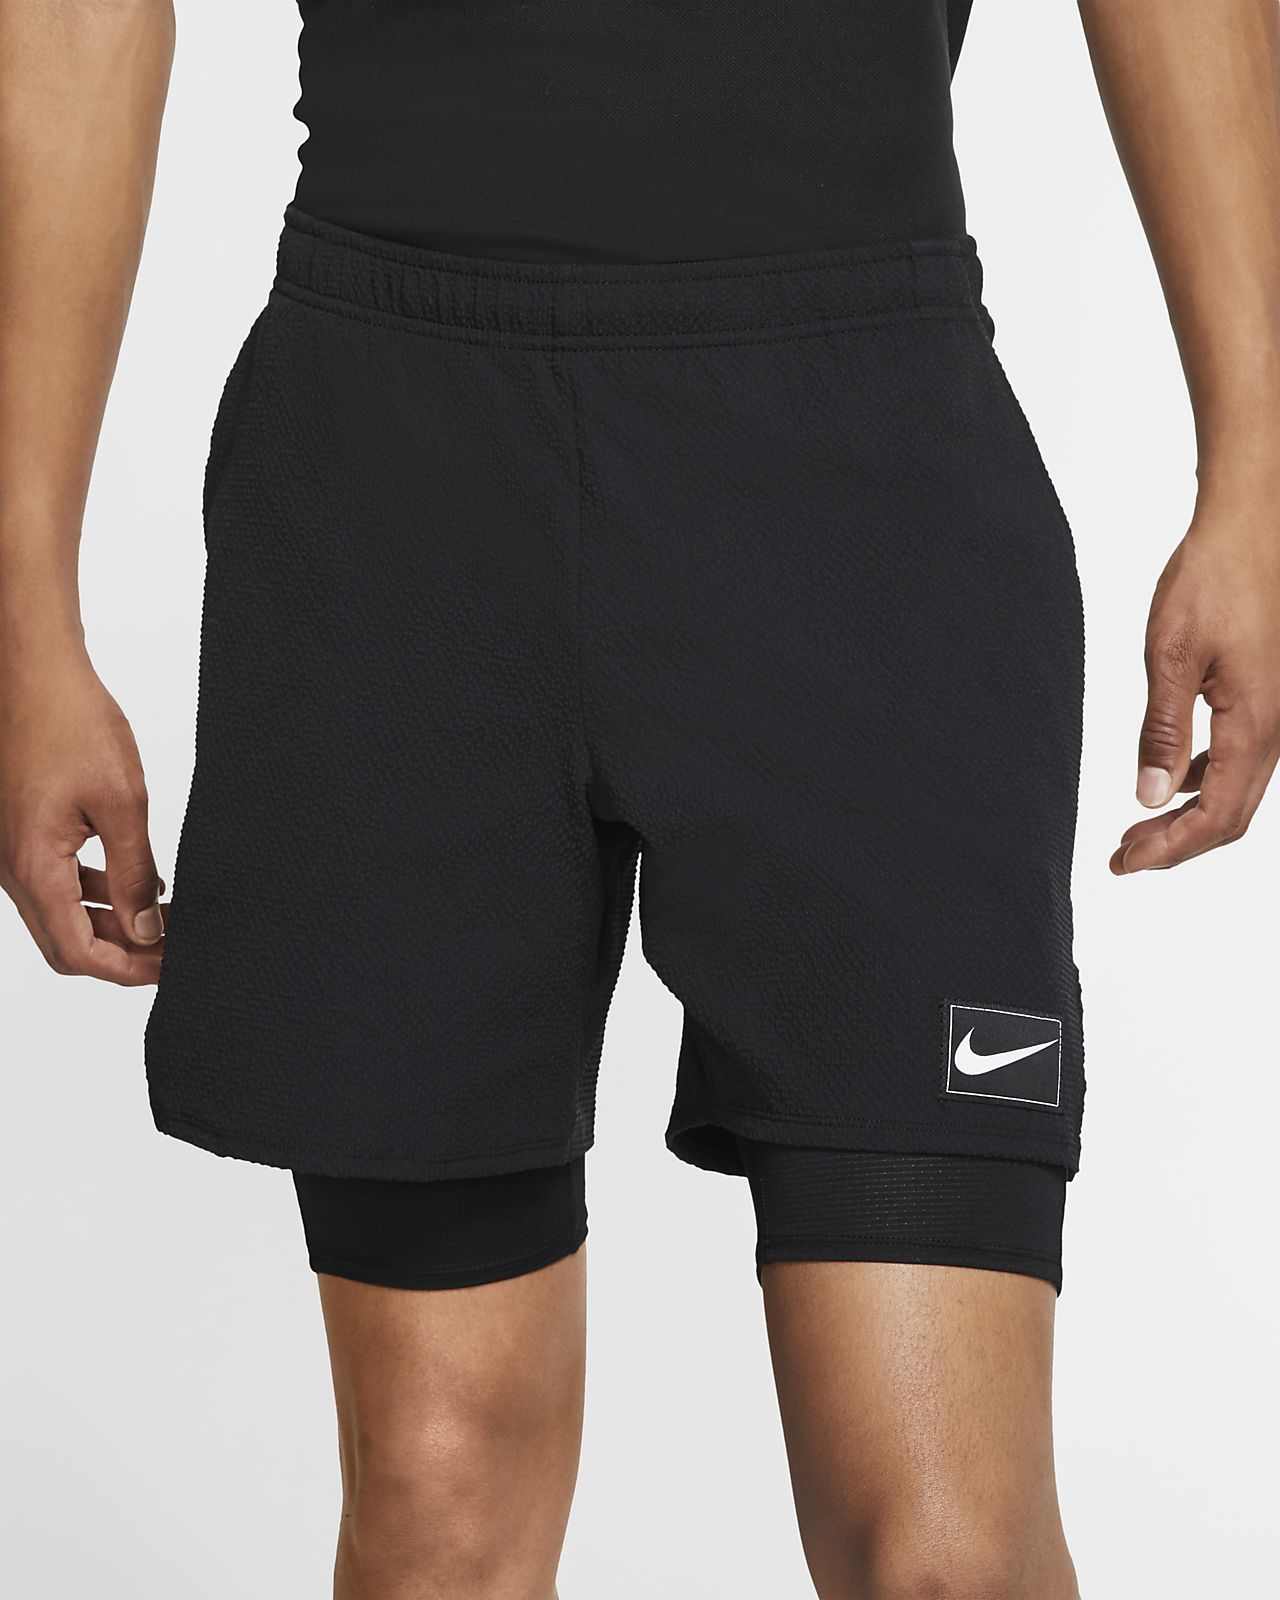 NikeCourt Ace Men's Tennis Shorts